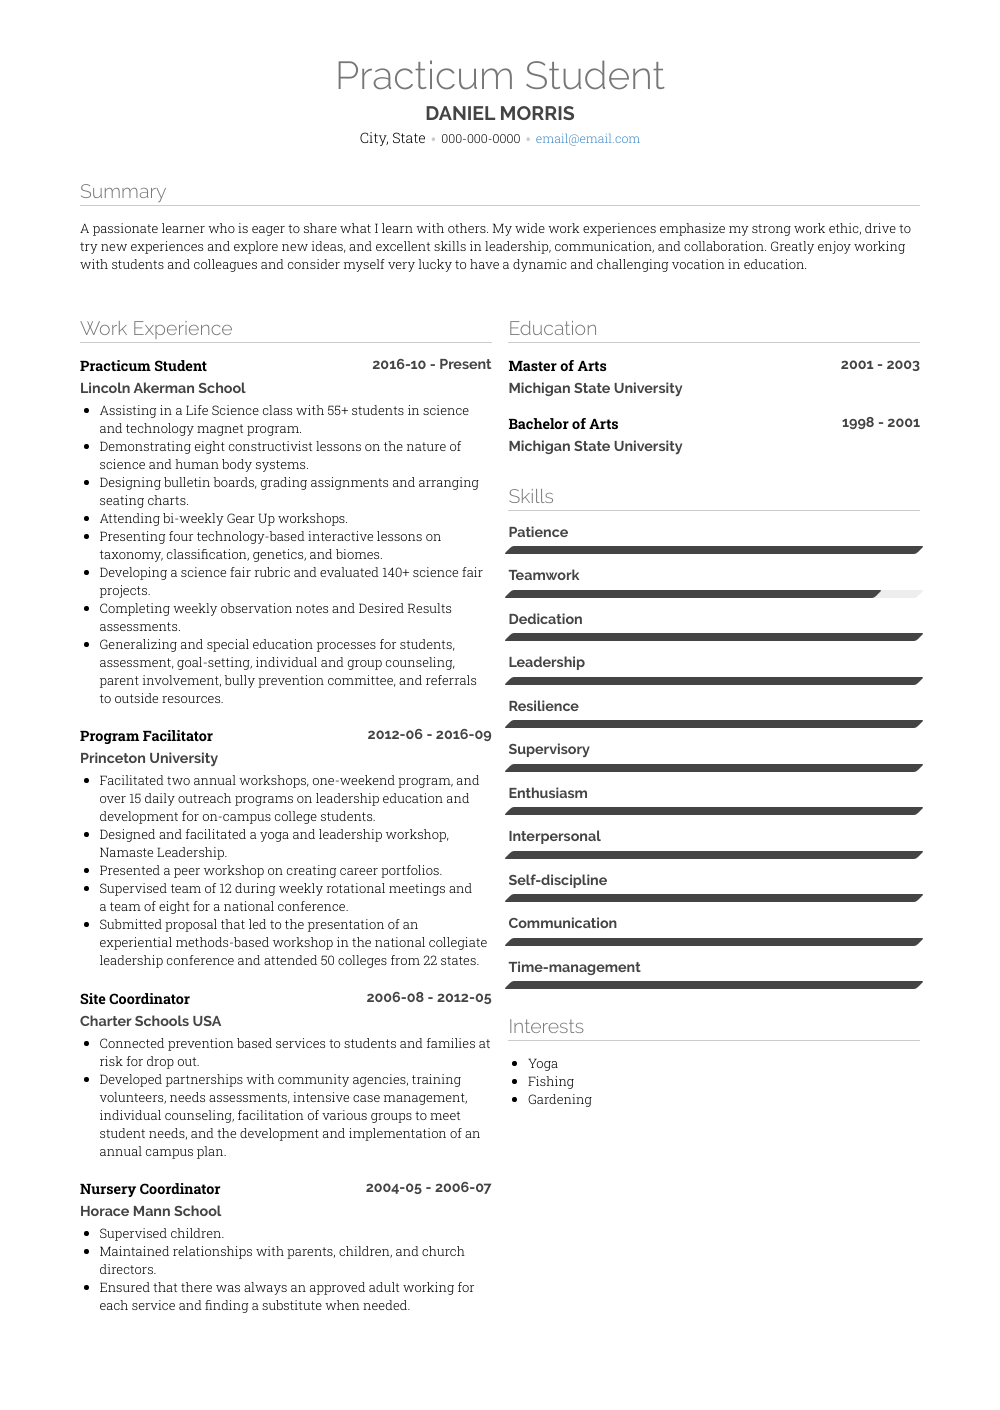 What To Have On A Resume.Practicum Student Resume Samples And Templates Visualcv